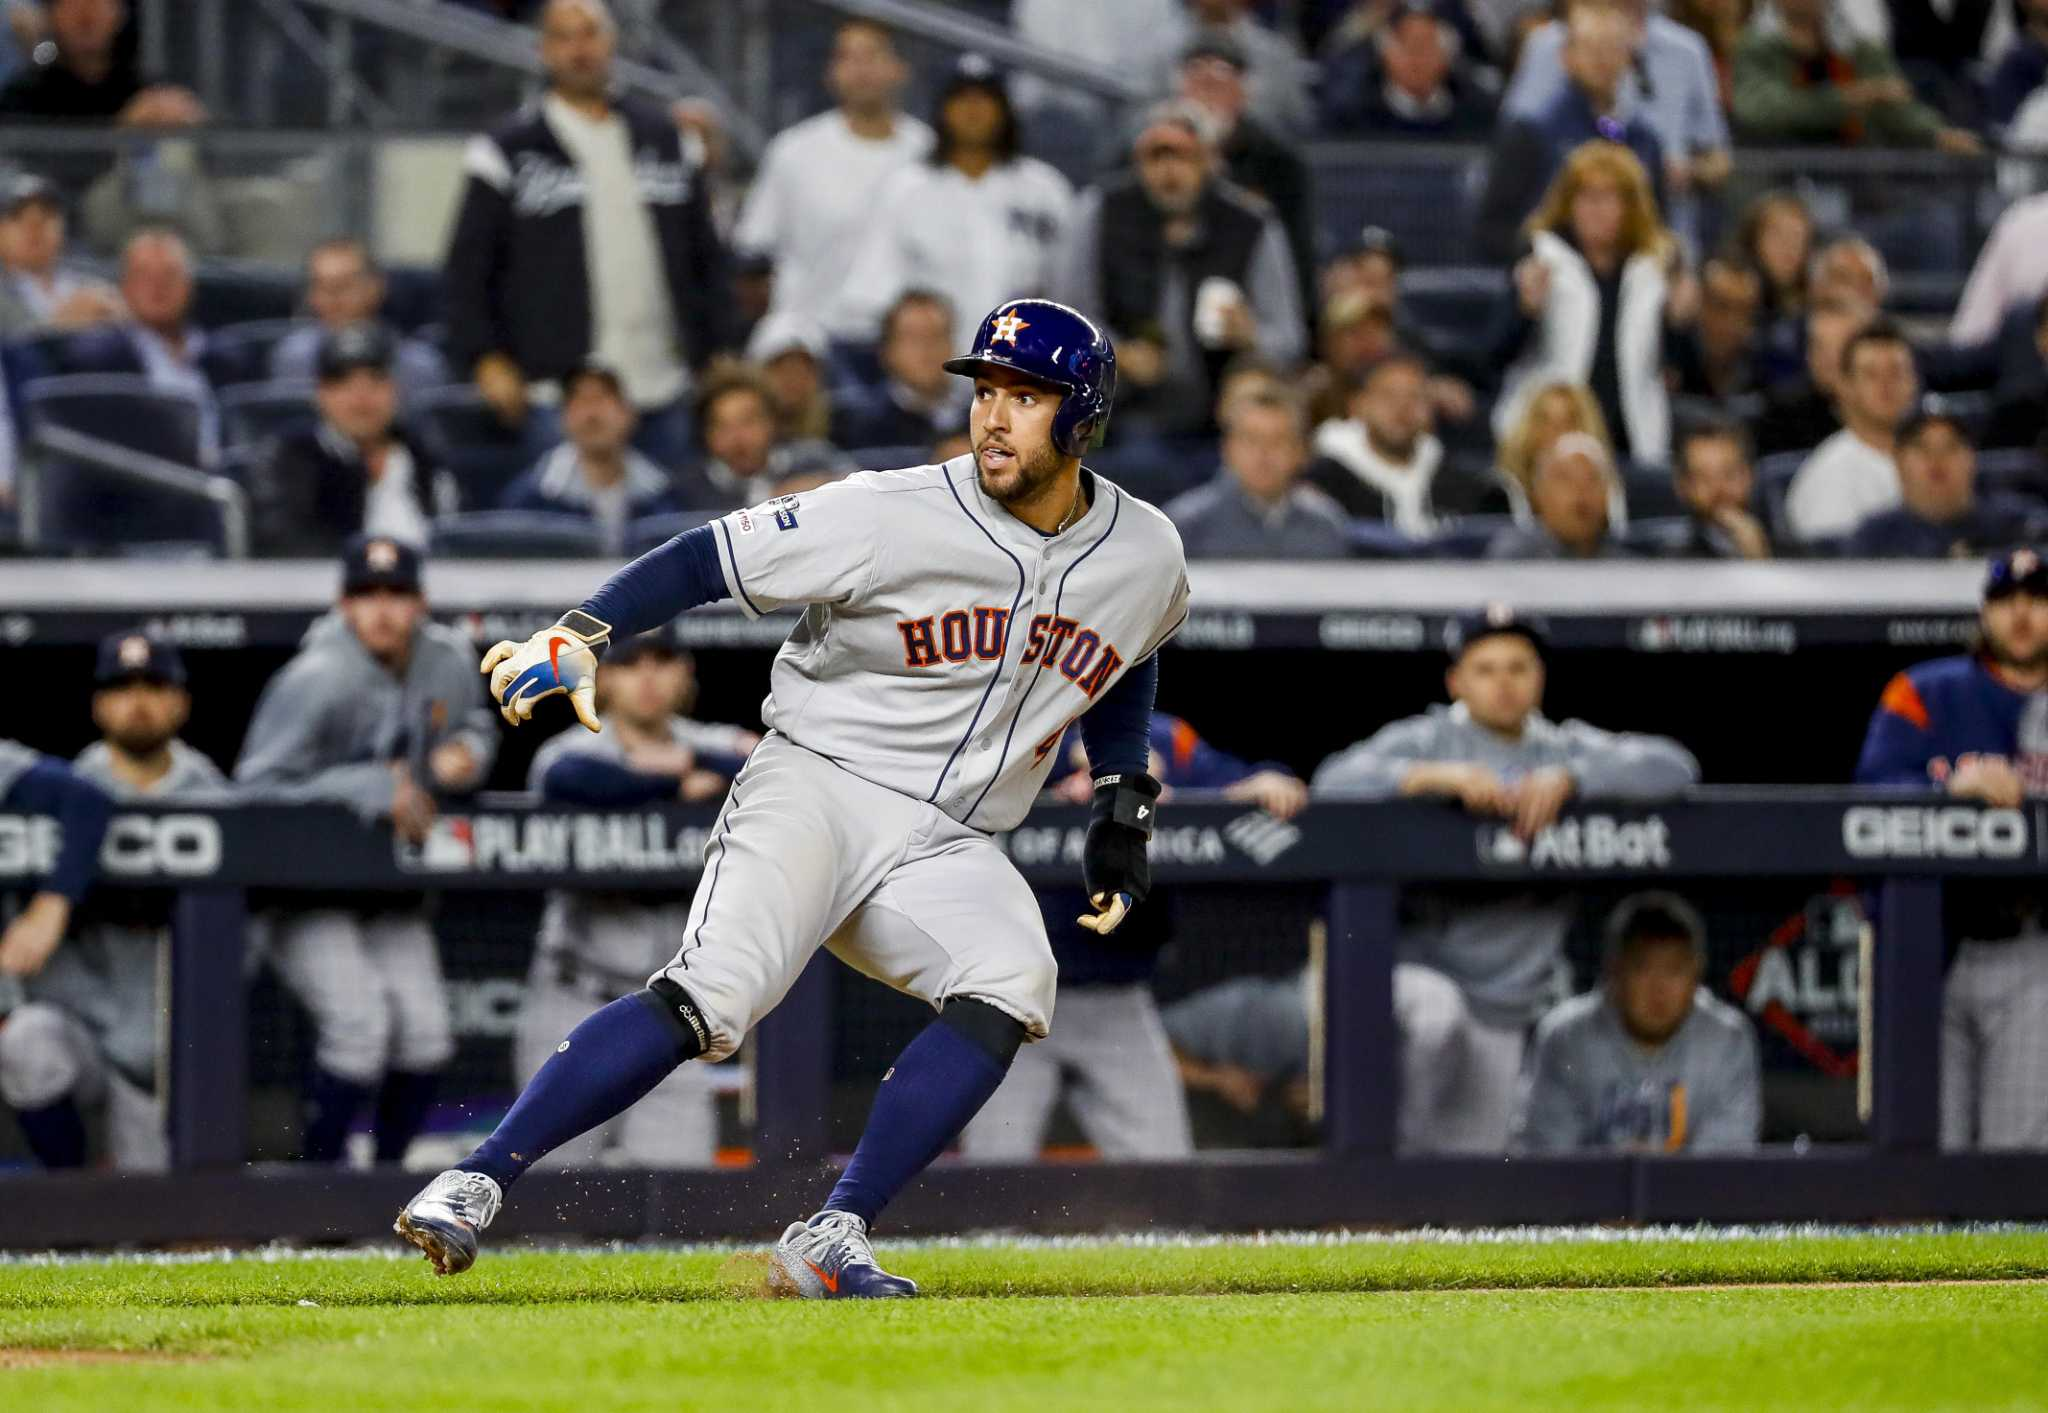 The little things count as Astros snag 2-1 lead in ALCS